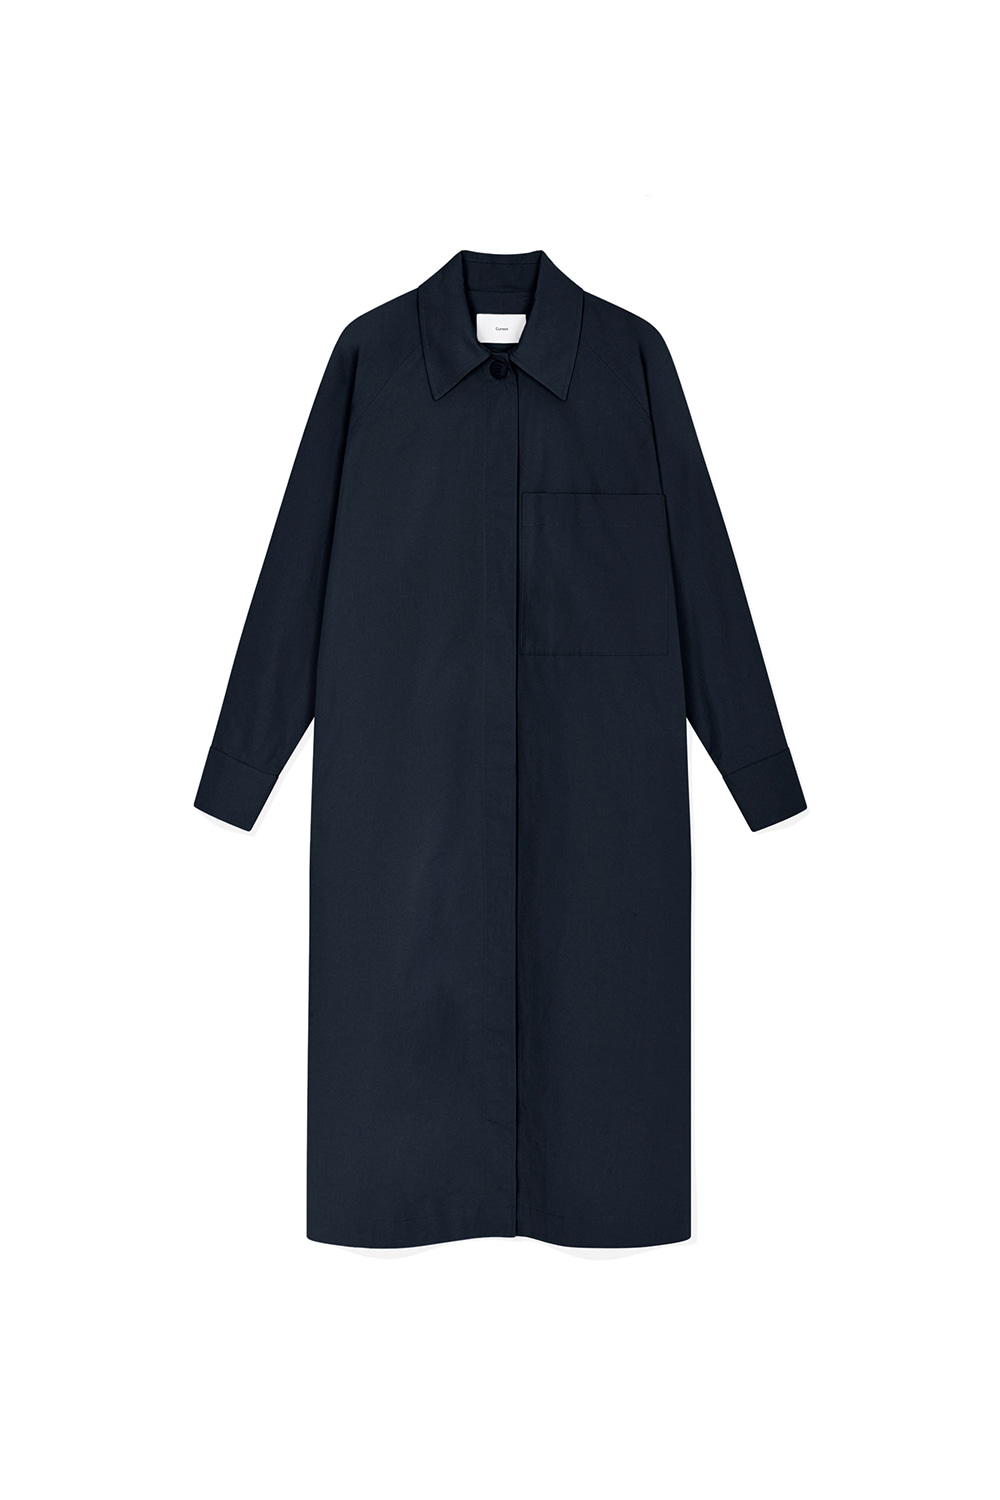 Over Shirts Dress Women JA [Dark Navy] -10%